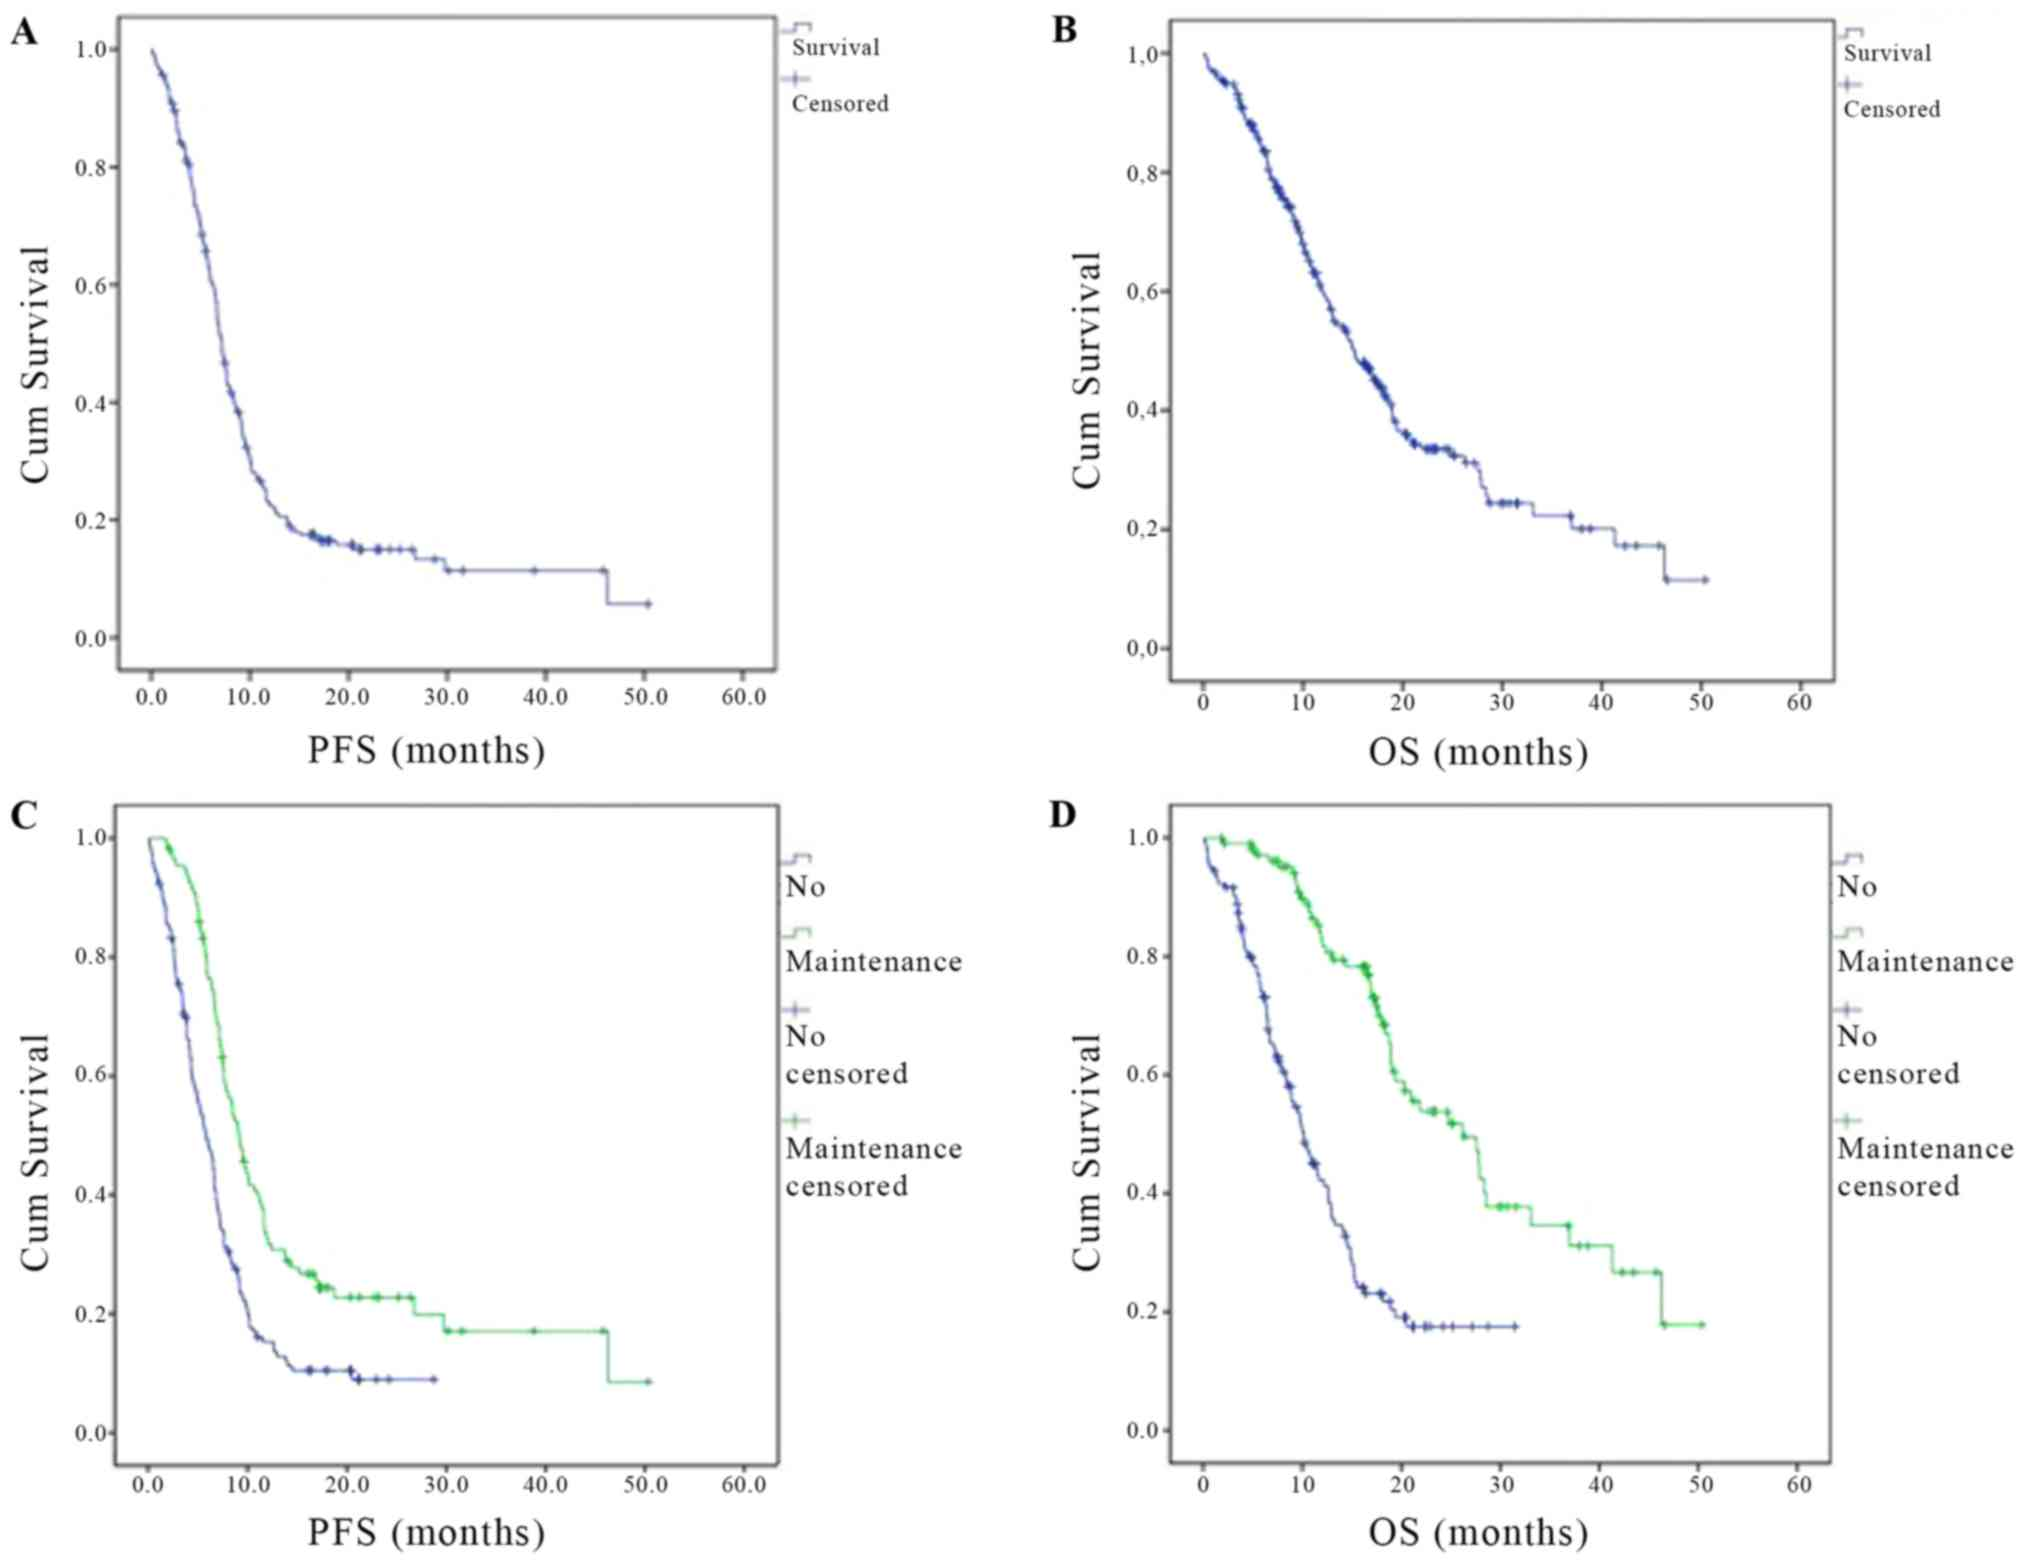 The Efficacy And Safety Of Bevacizumab In Addition To Platinum Based Chemotherapy For The First Line Treatment Of Patients With Advanced Nonsquamous Non Small Cell Lung Cancer Final Results Of Avalanche An Observational Cohort Study